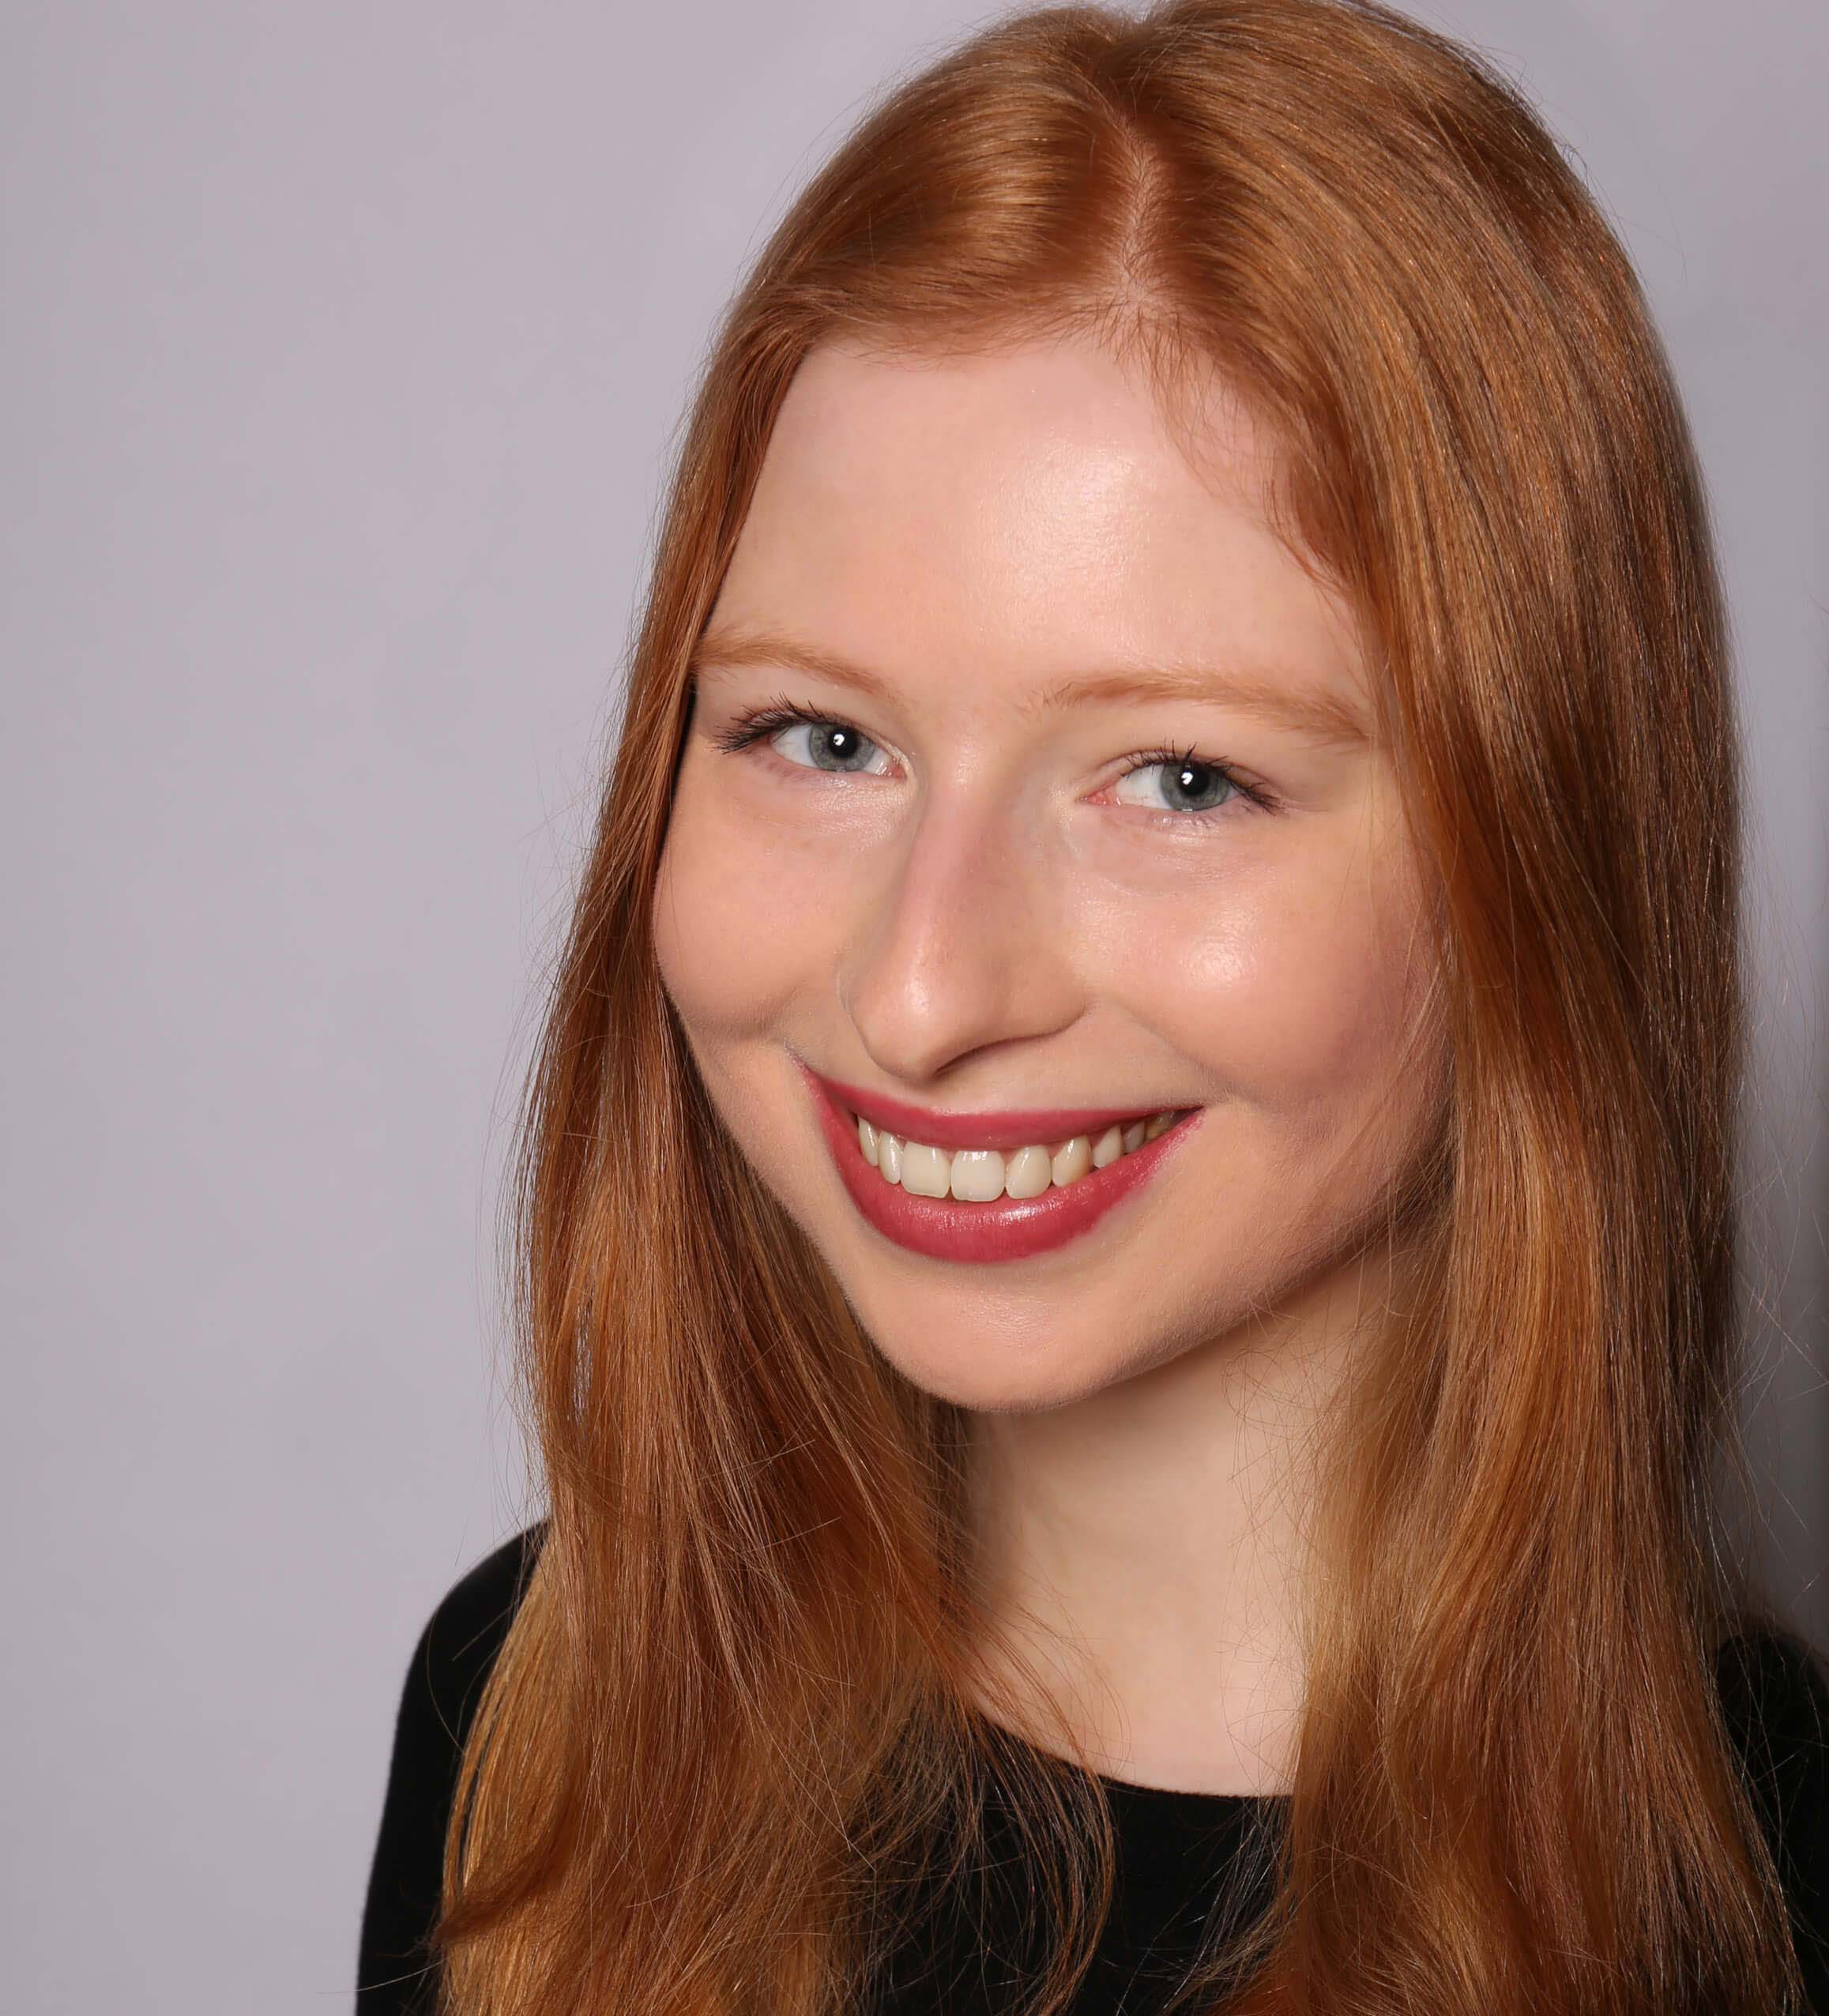 Amelie Litwin, Marketingexpertin bei Styla